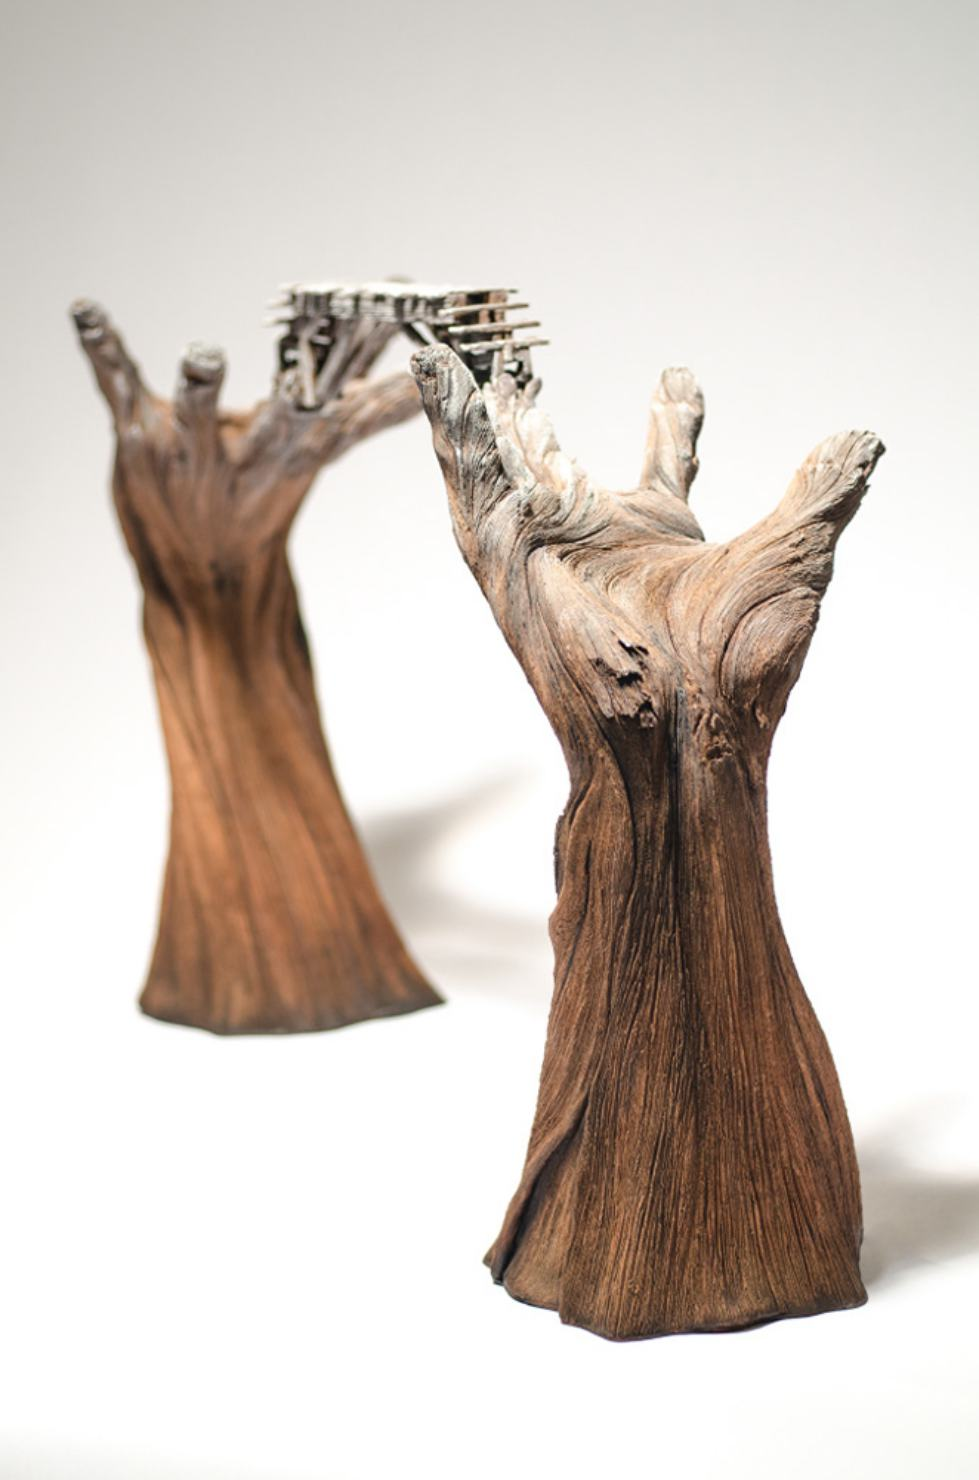 Christopher David White – Going Hand In Hand – Sculpture